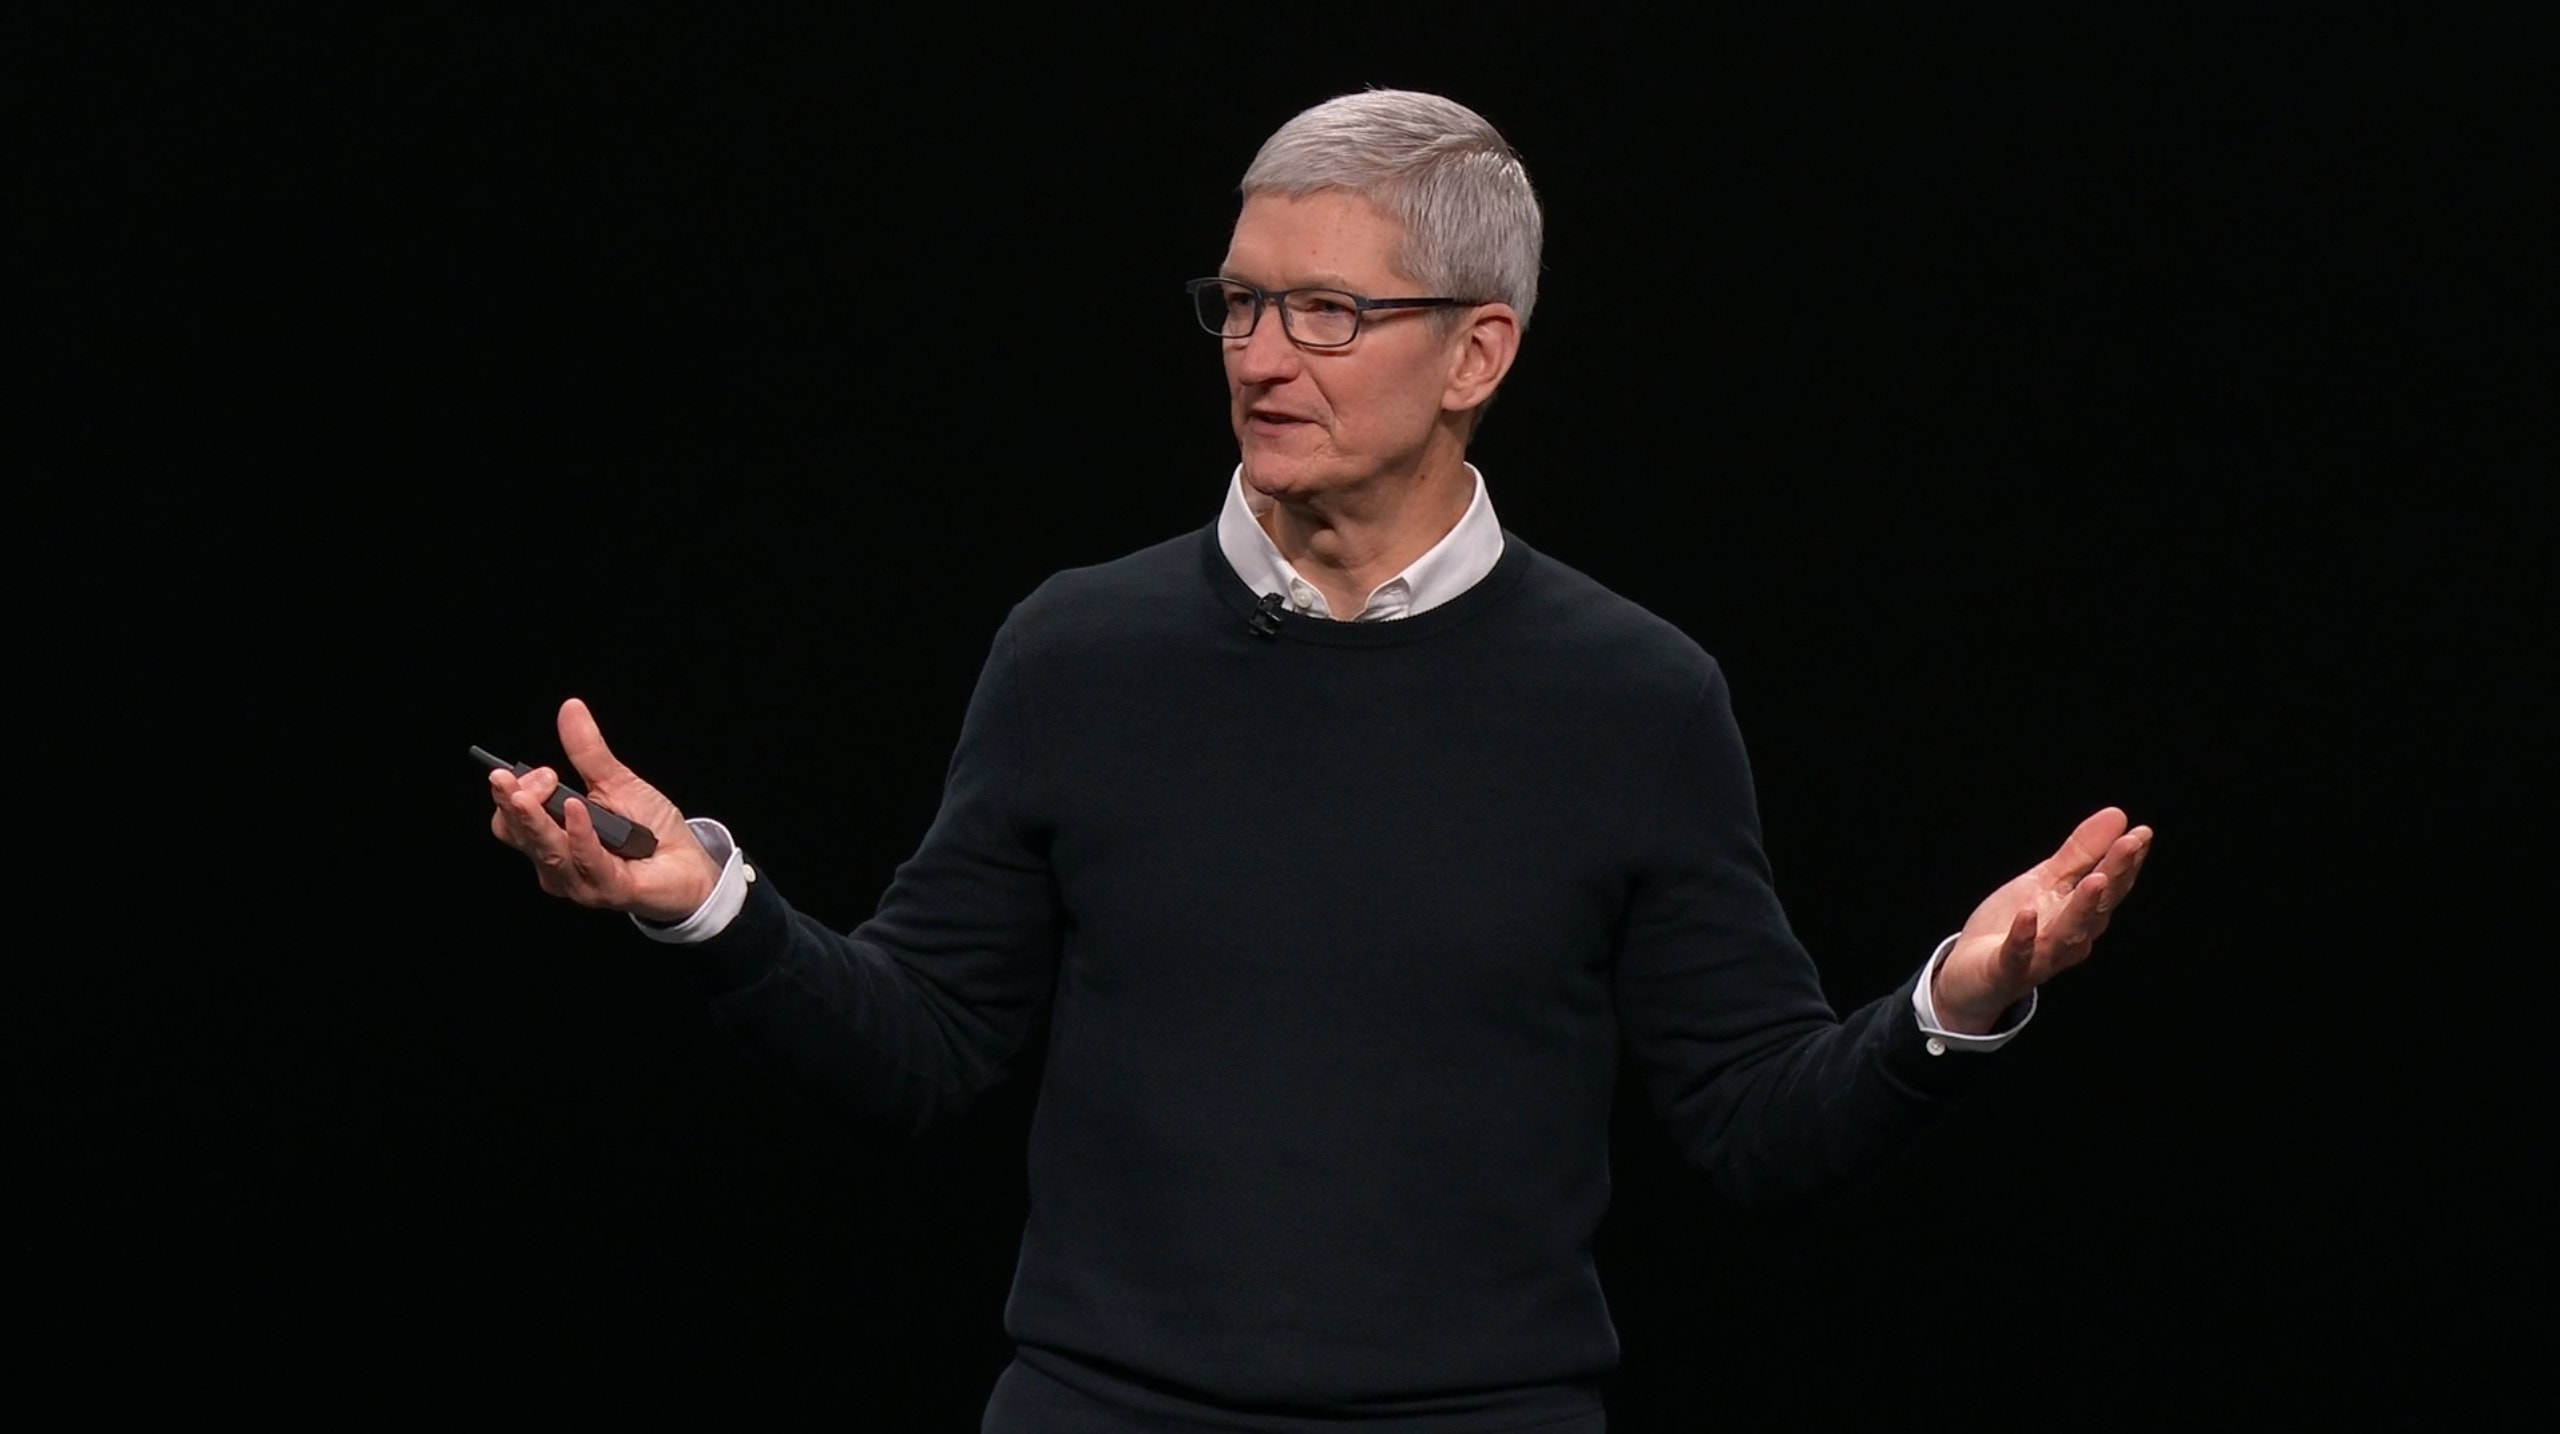 2018 interview with Tim Cook suggests Apple was working on iCloud backup encryption